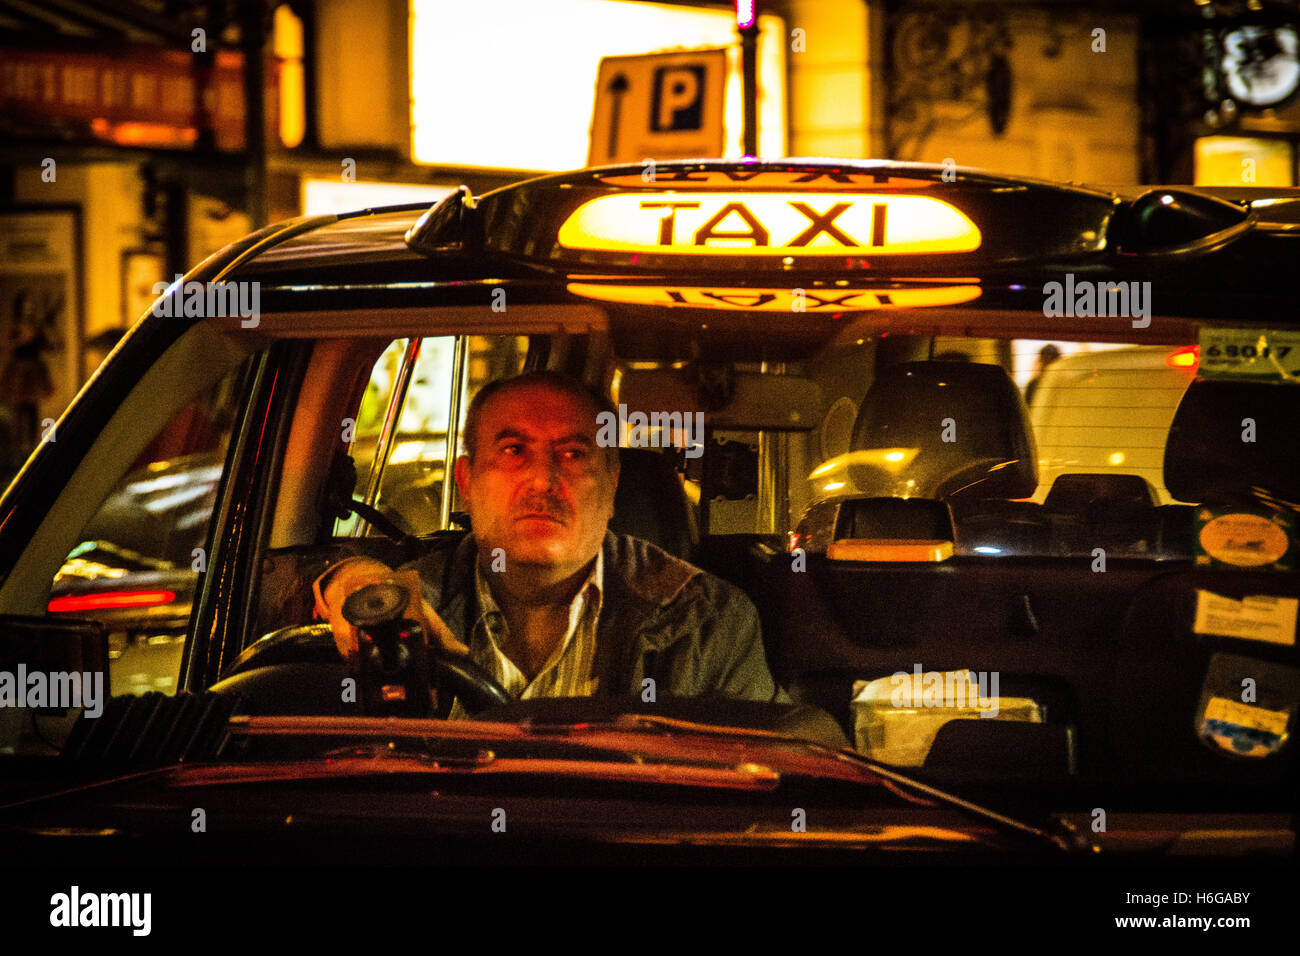 taxi sign night uk stockfotos taxi sign night uk bilder. Black Bedroom Furniture Sets. Home Design Ideas